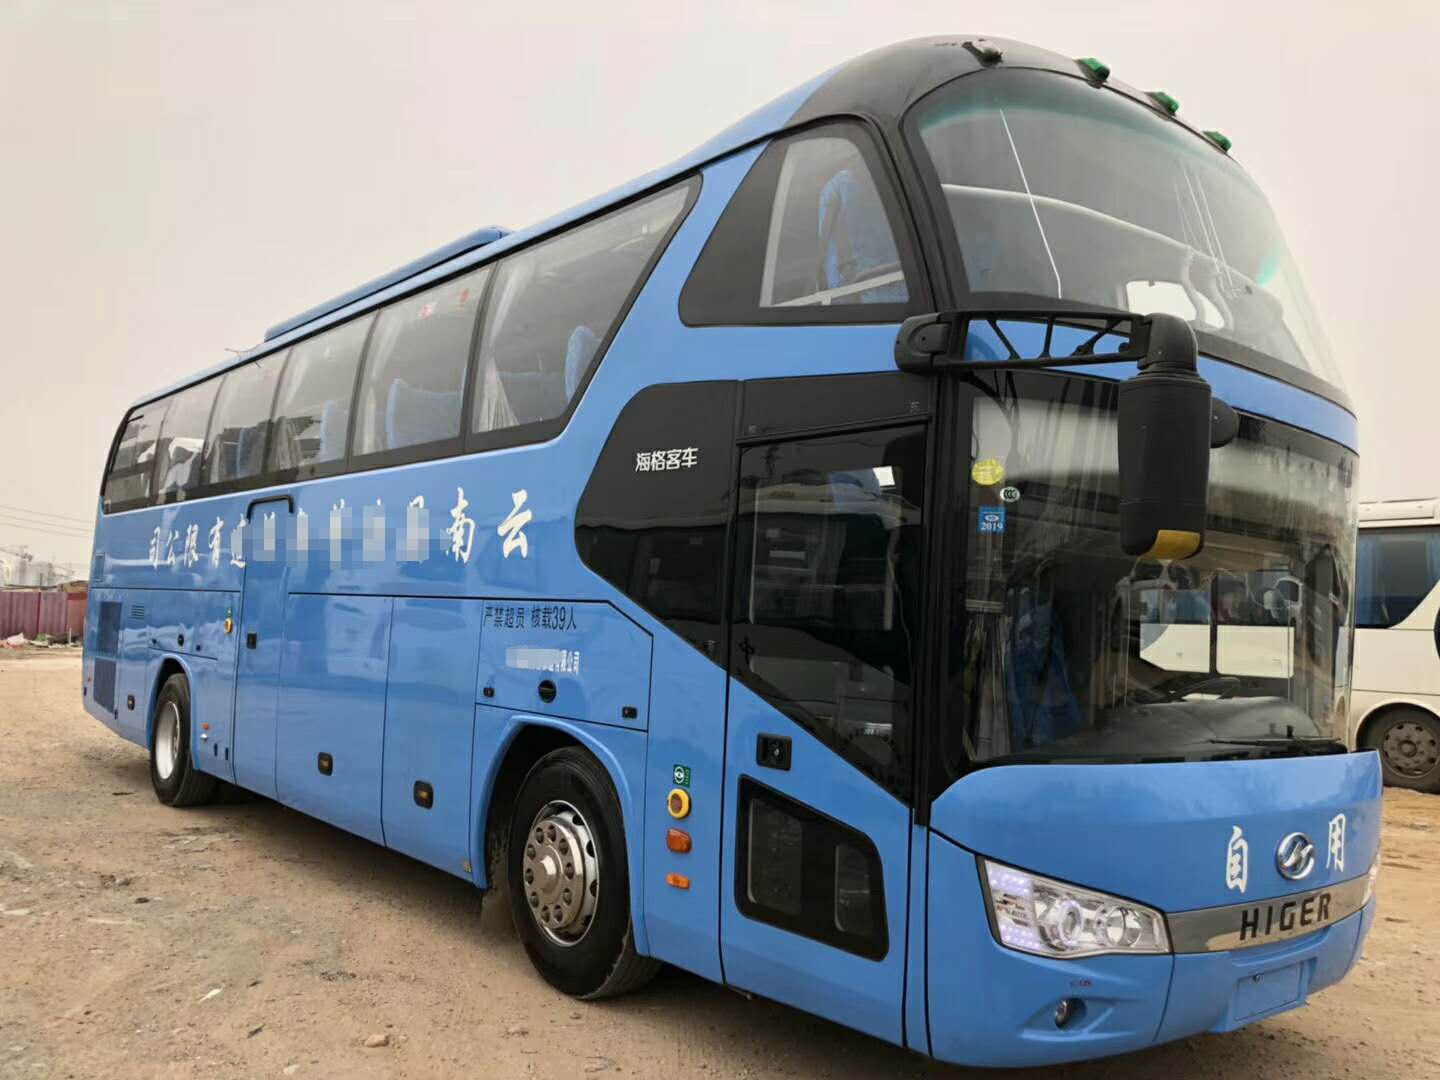 Current New Arrival Used Higer Coach Bus 39 Seats Diesel Blue A layer an half Wechai Run Good